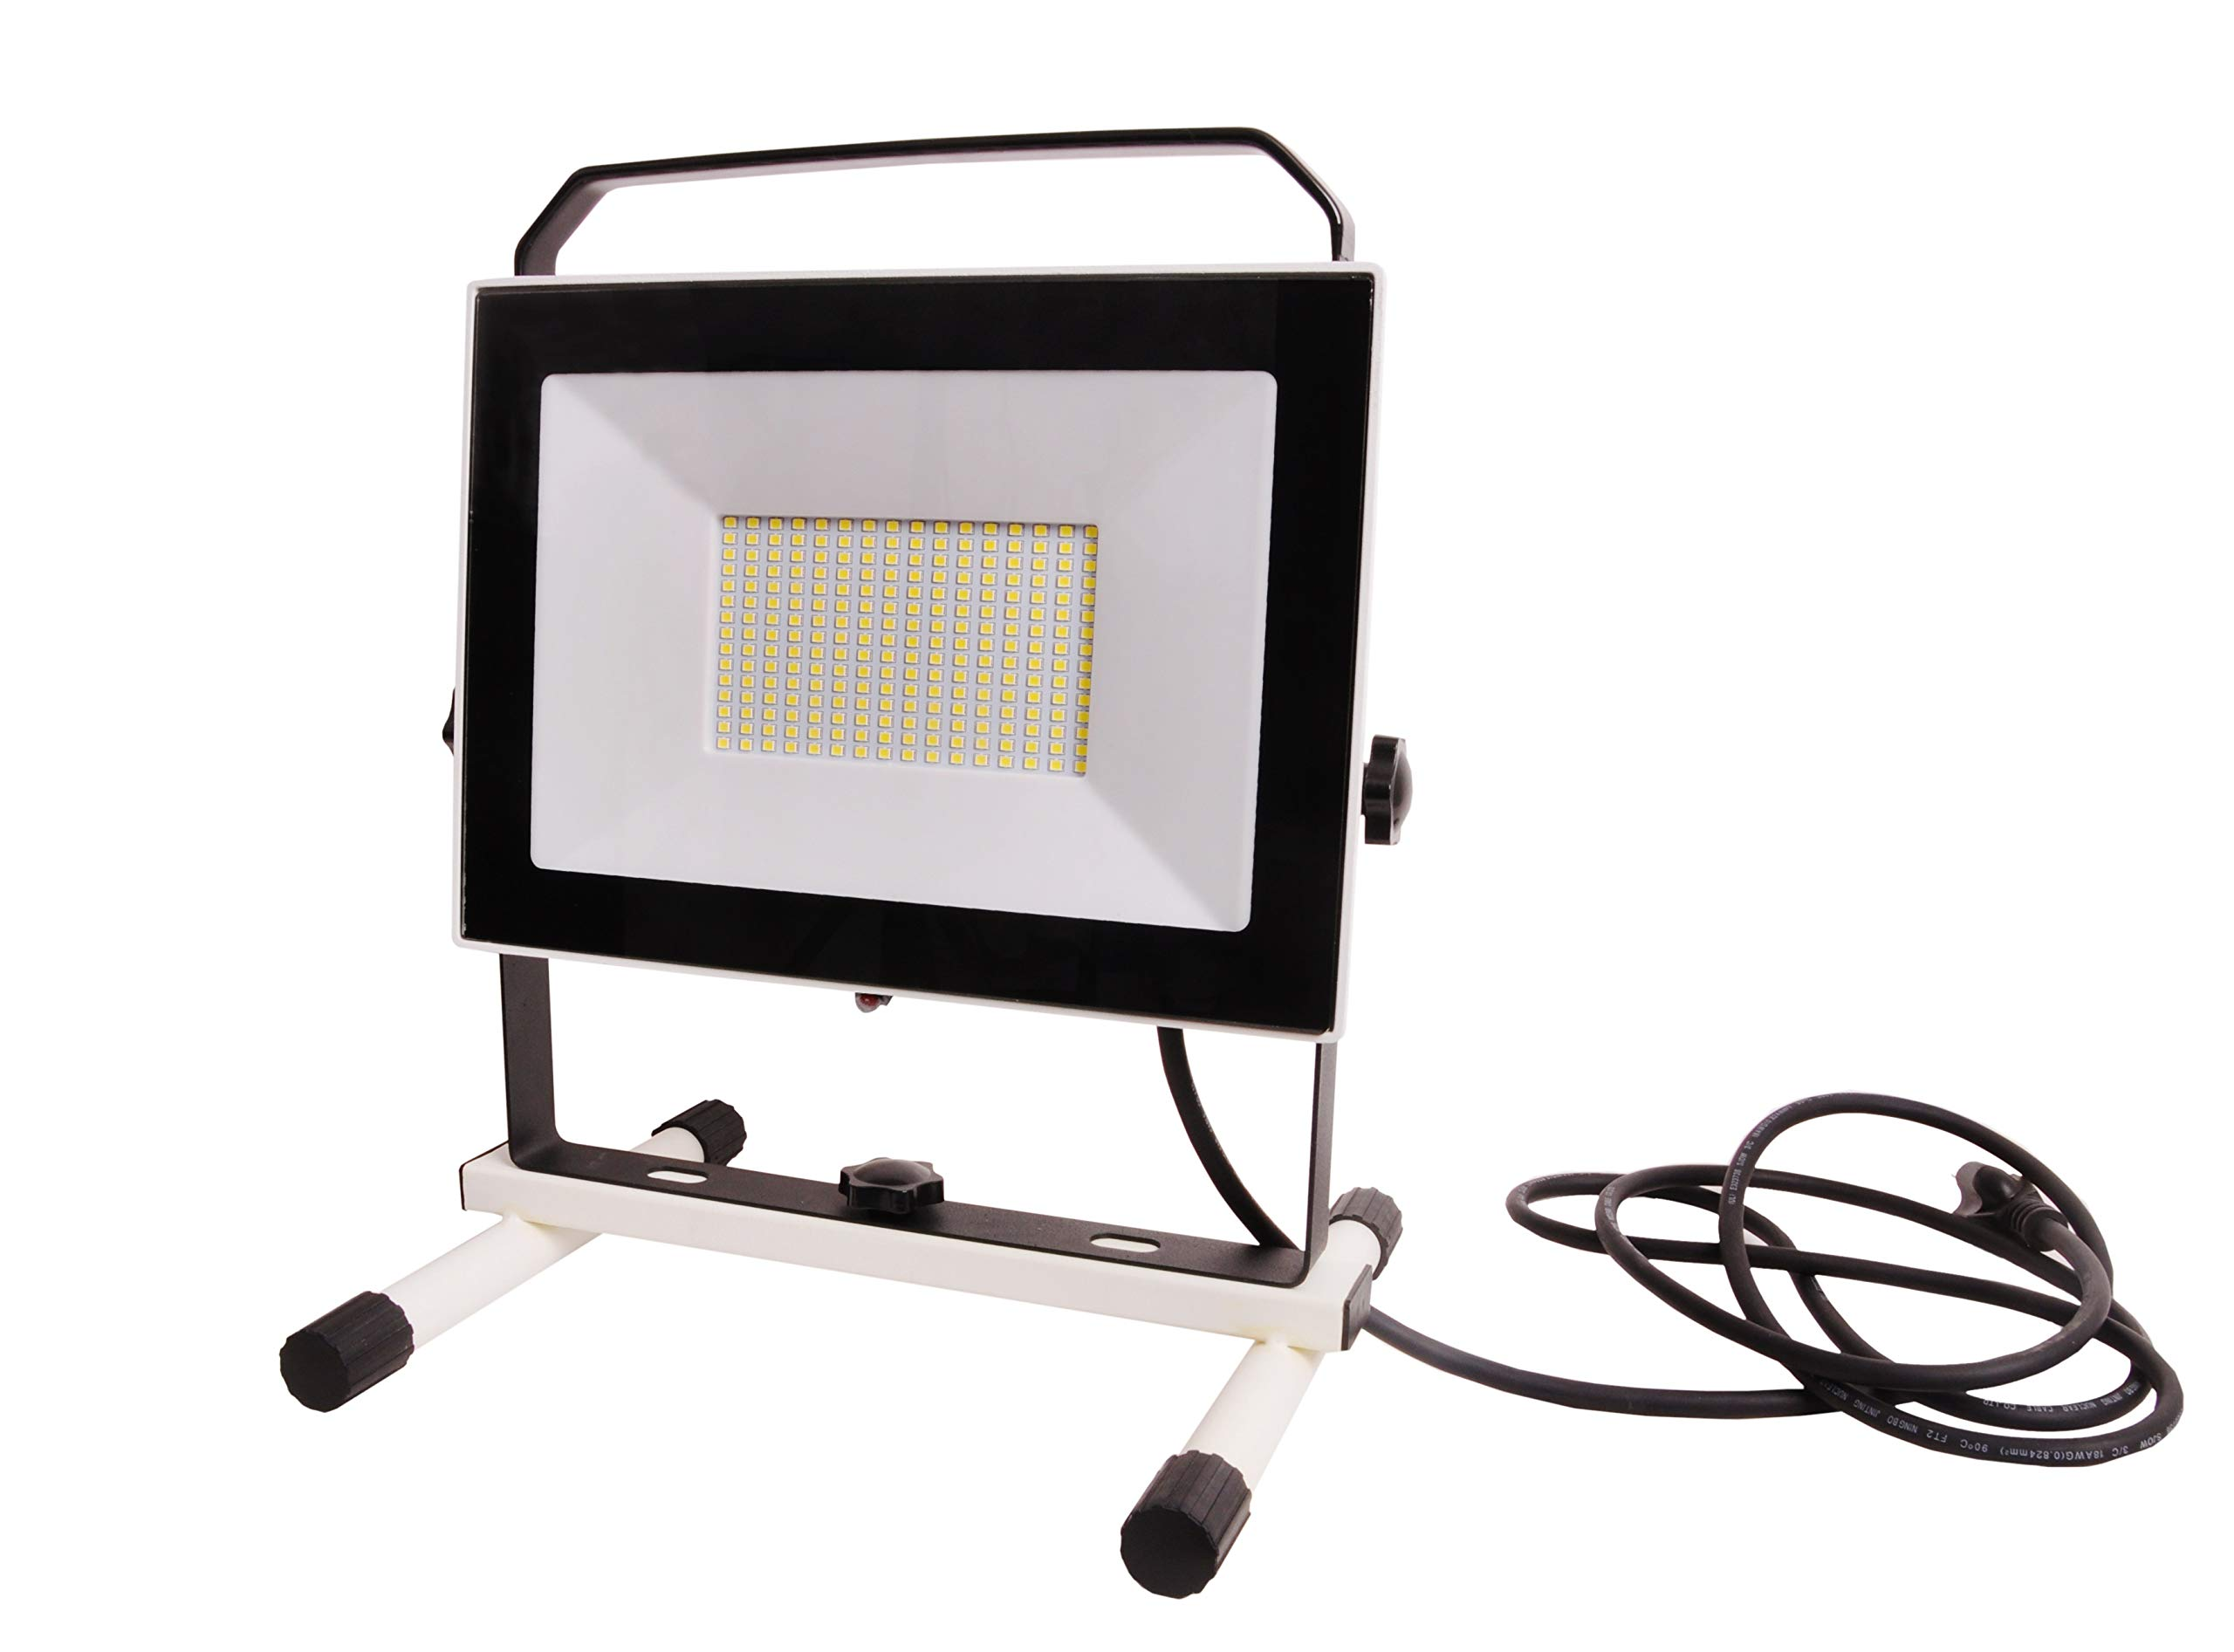 NextLED 10000LM 110 W LED Work Light (1000W Equivalent). IP 65 Water Proof Flood Light, Stand Working Light for Workshop, Construction Site, 180/360 Degree Adjustable Lighting Angles, ETL Certified